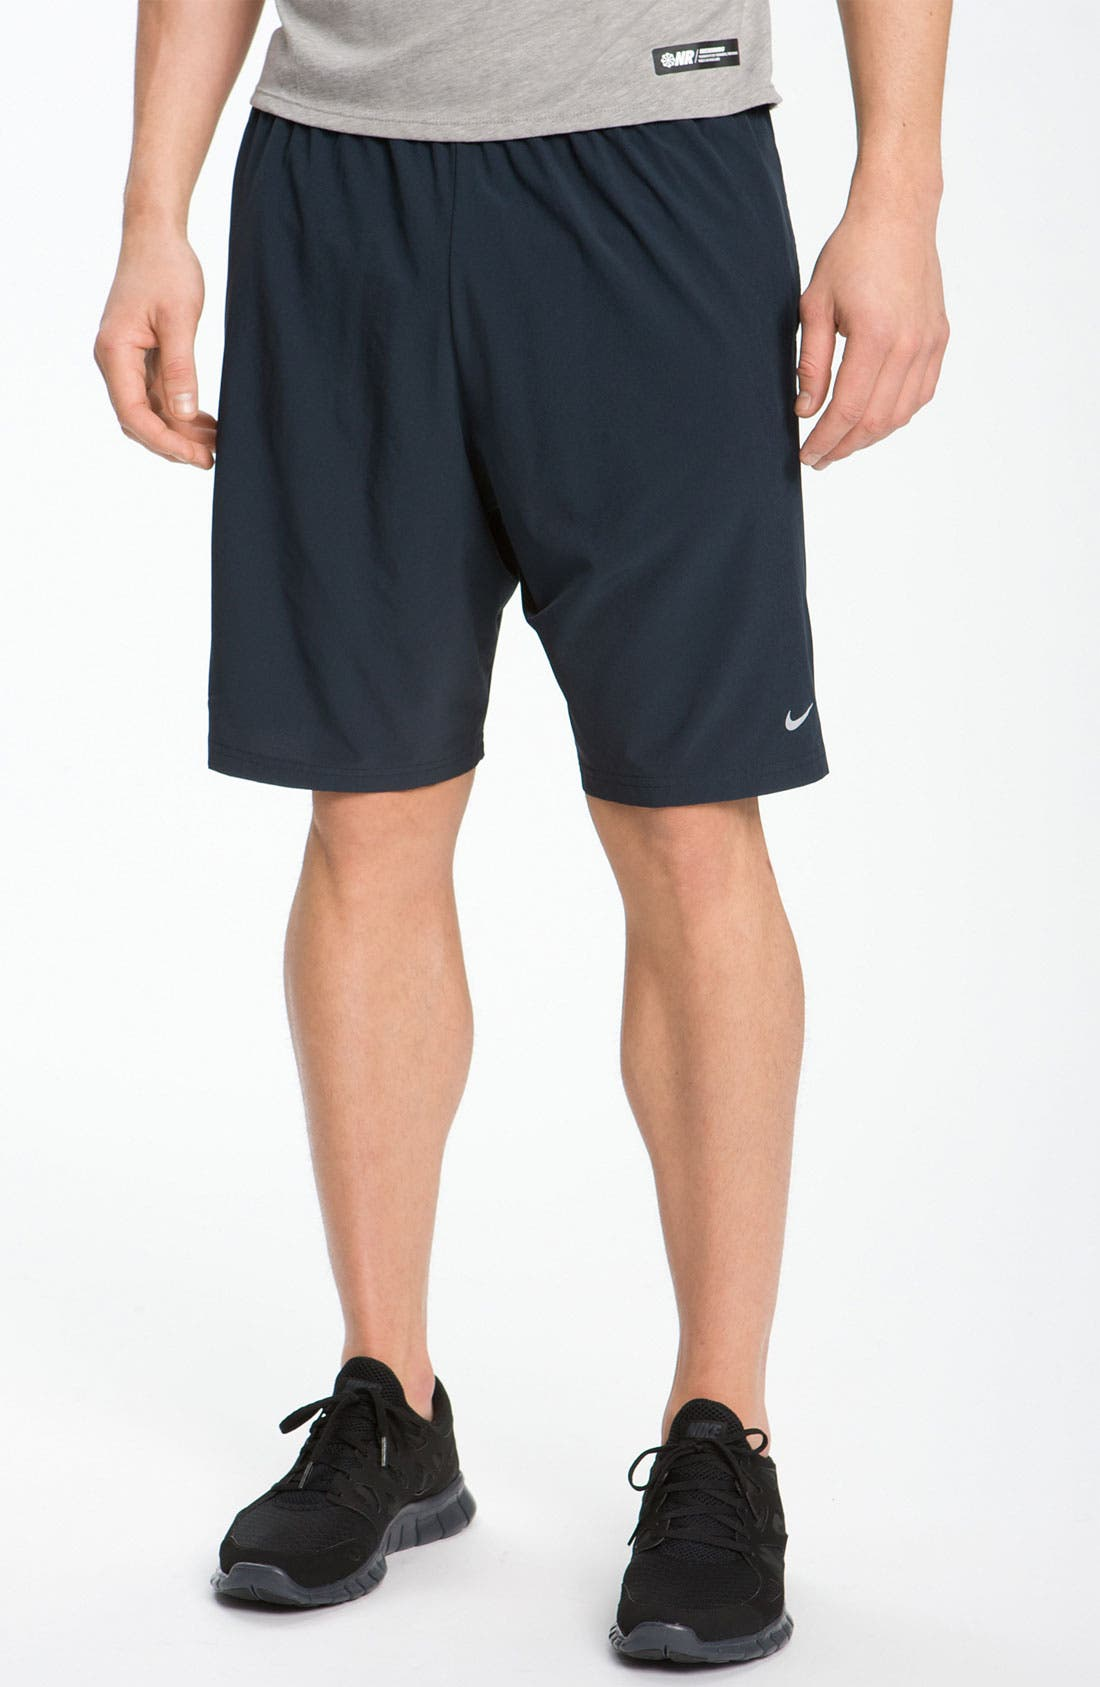 Alternate Image 1 Selected - Nike Dri-FIT Woven Running Shorts (Online Only)